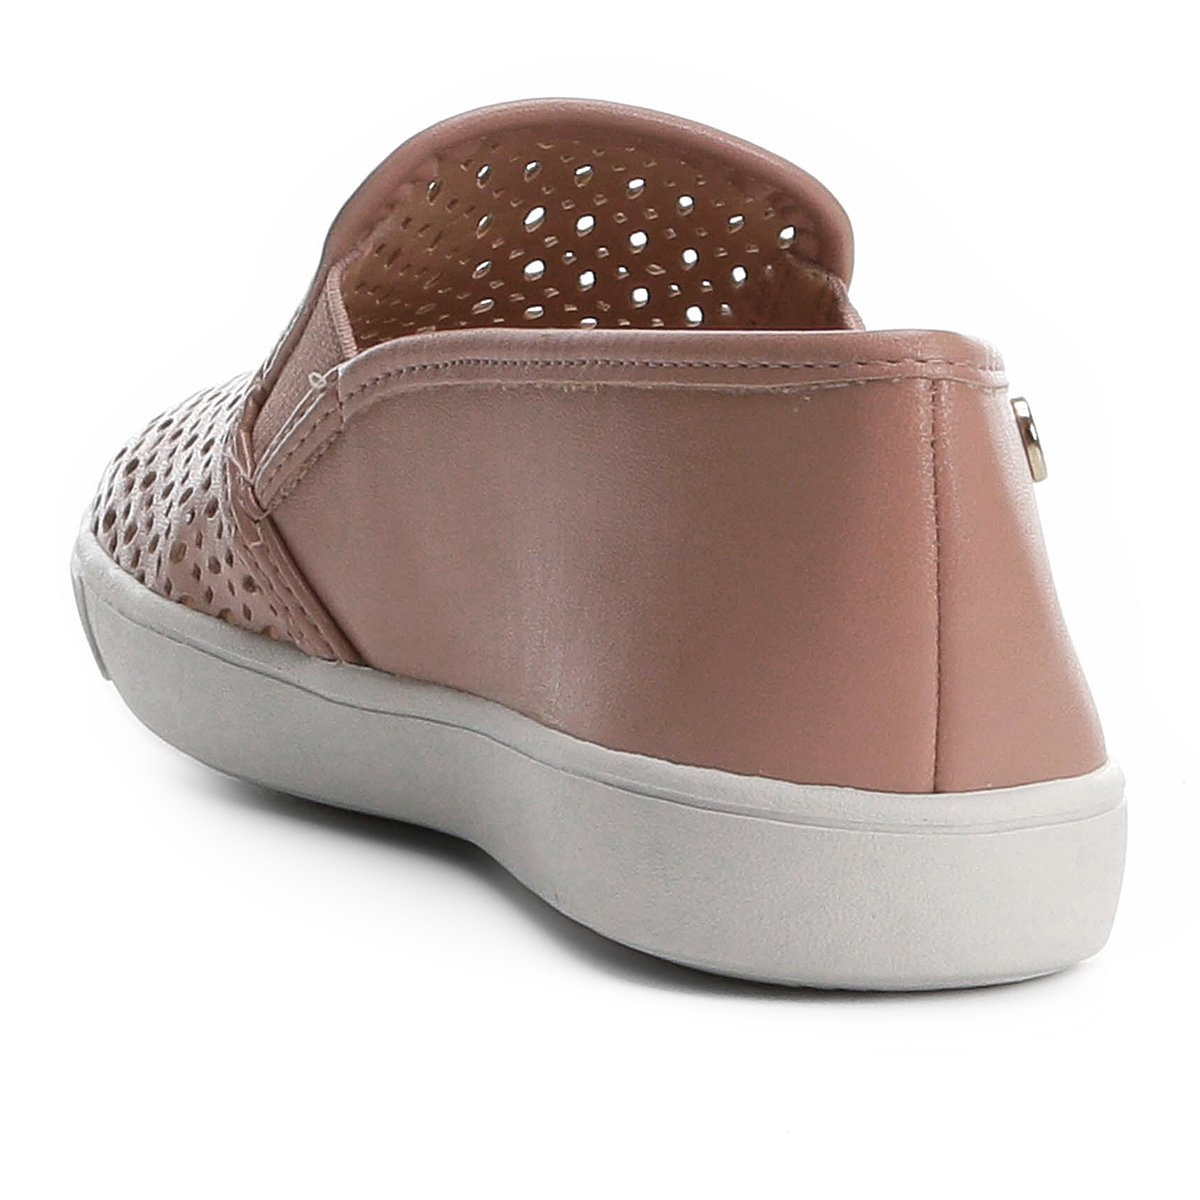 Vazado Rosa Via On Uno Slip Slip On Feminino qzp04wXw